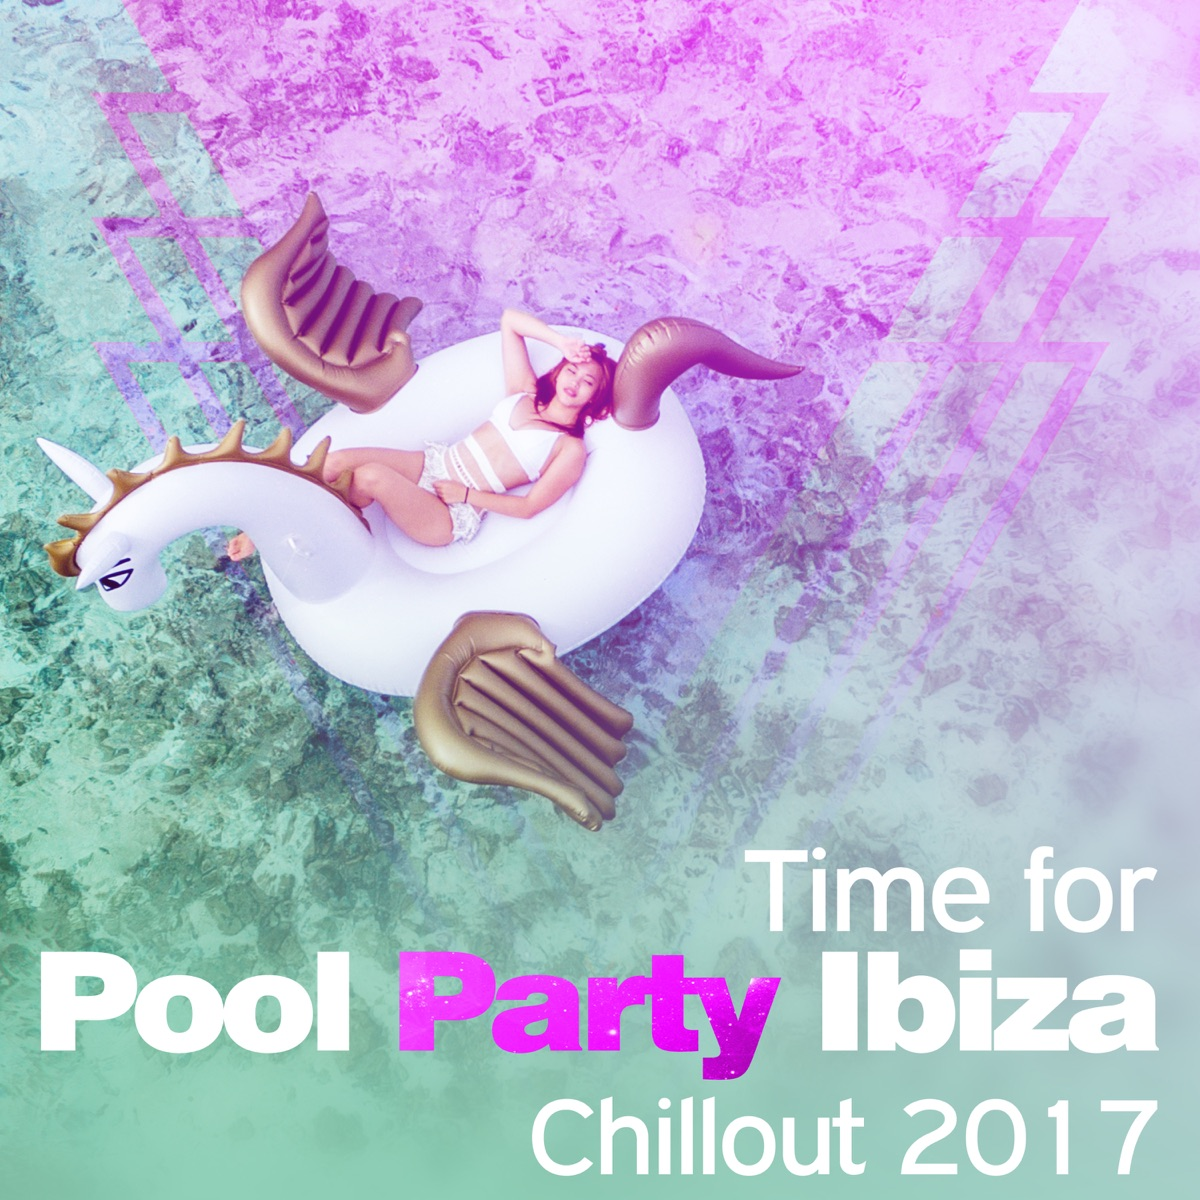 Time for Pool Party Ibiza Chillout 2017: Summer Beats